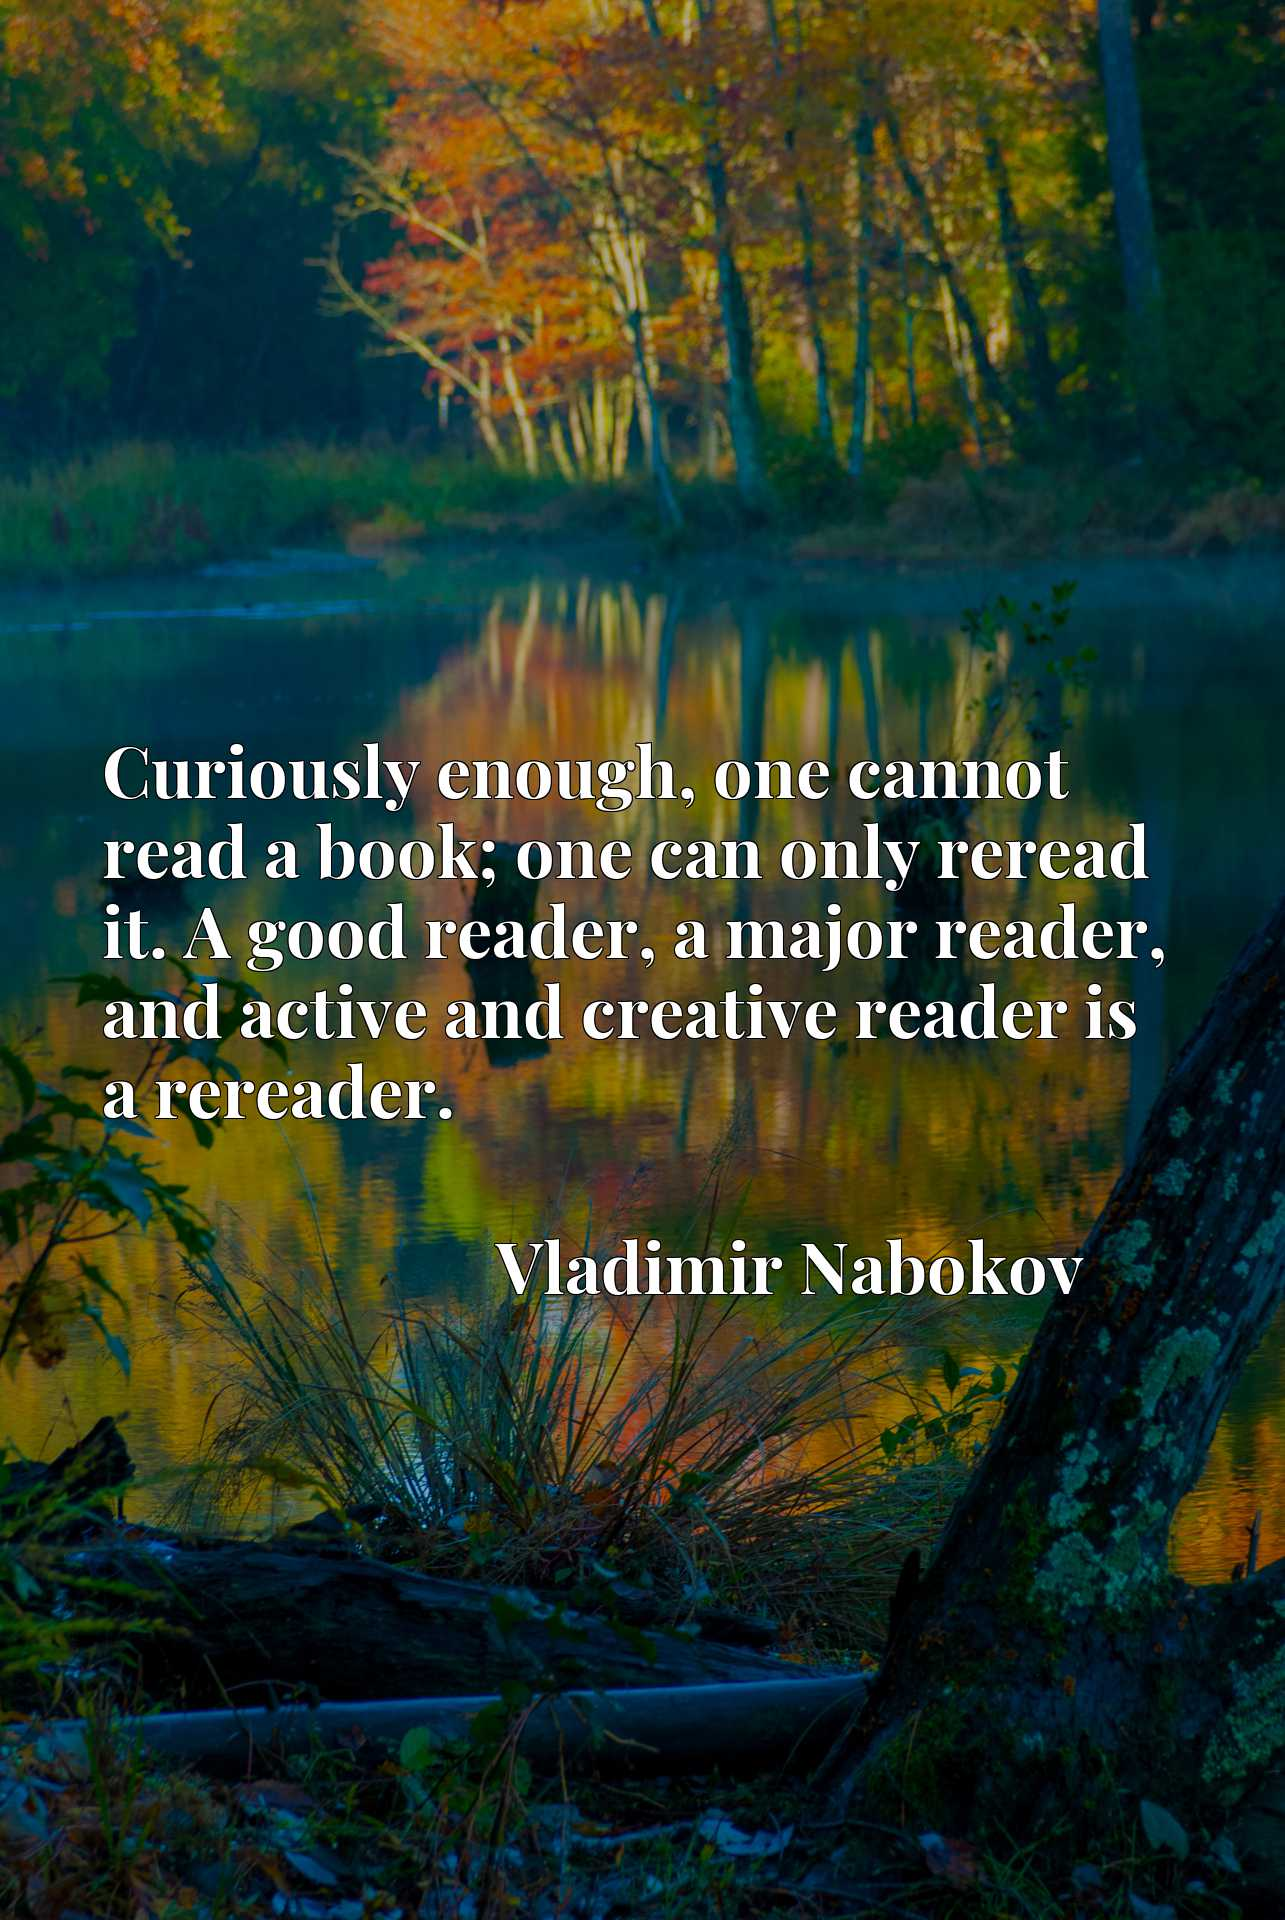 Curiously enough, one cannot read a book; one can only reread it. A good reader, a major reader, and active and creative reader is a rereader.